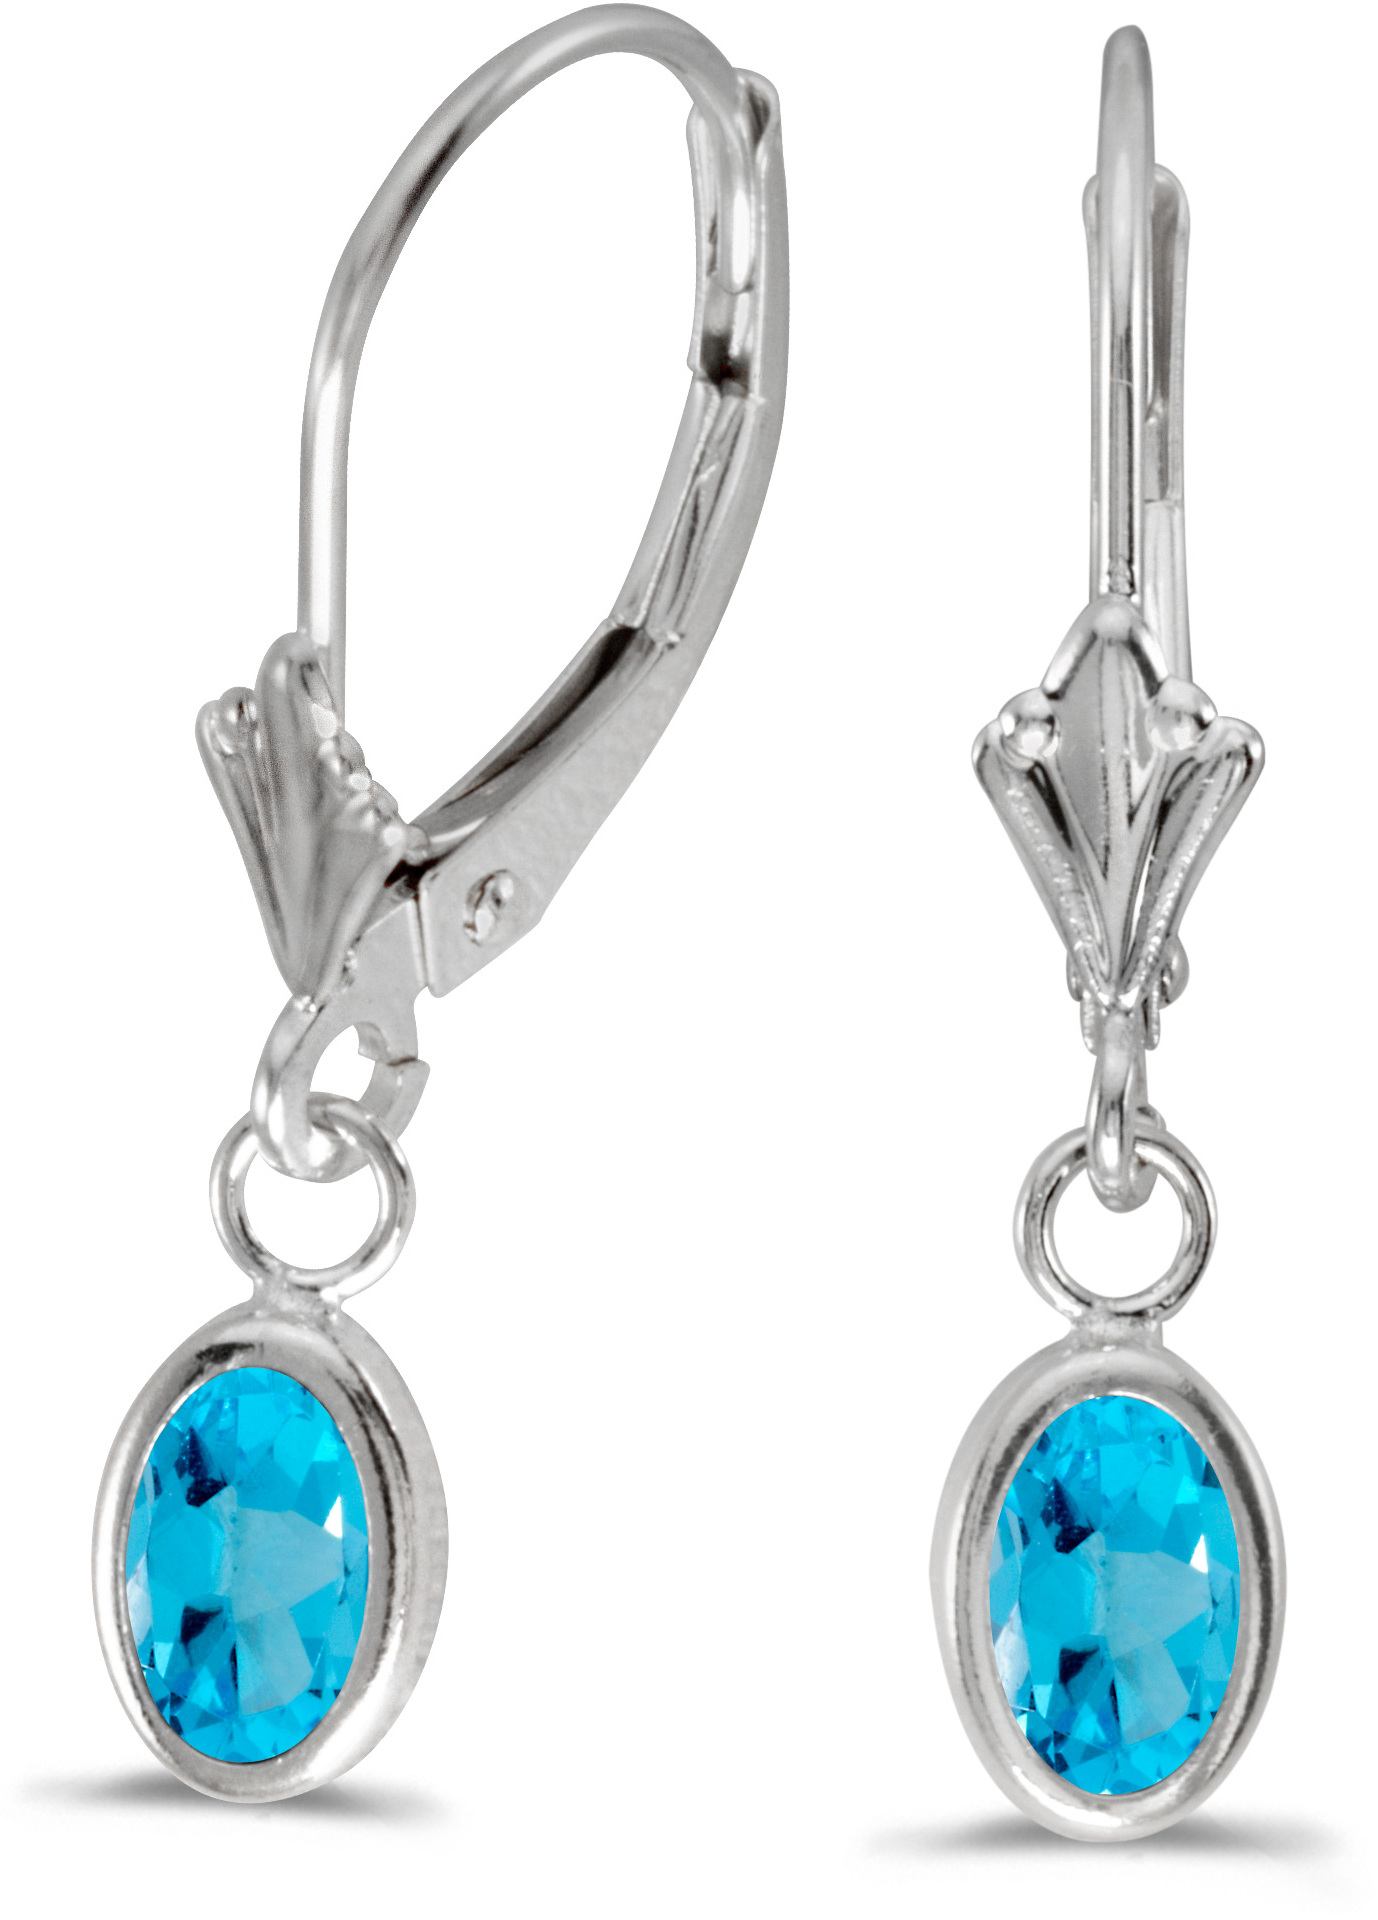 14k White Gold Oval Blue Topaz Bezel Lever-back Earrings